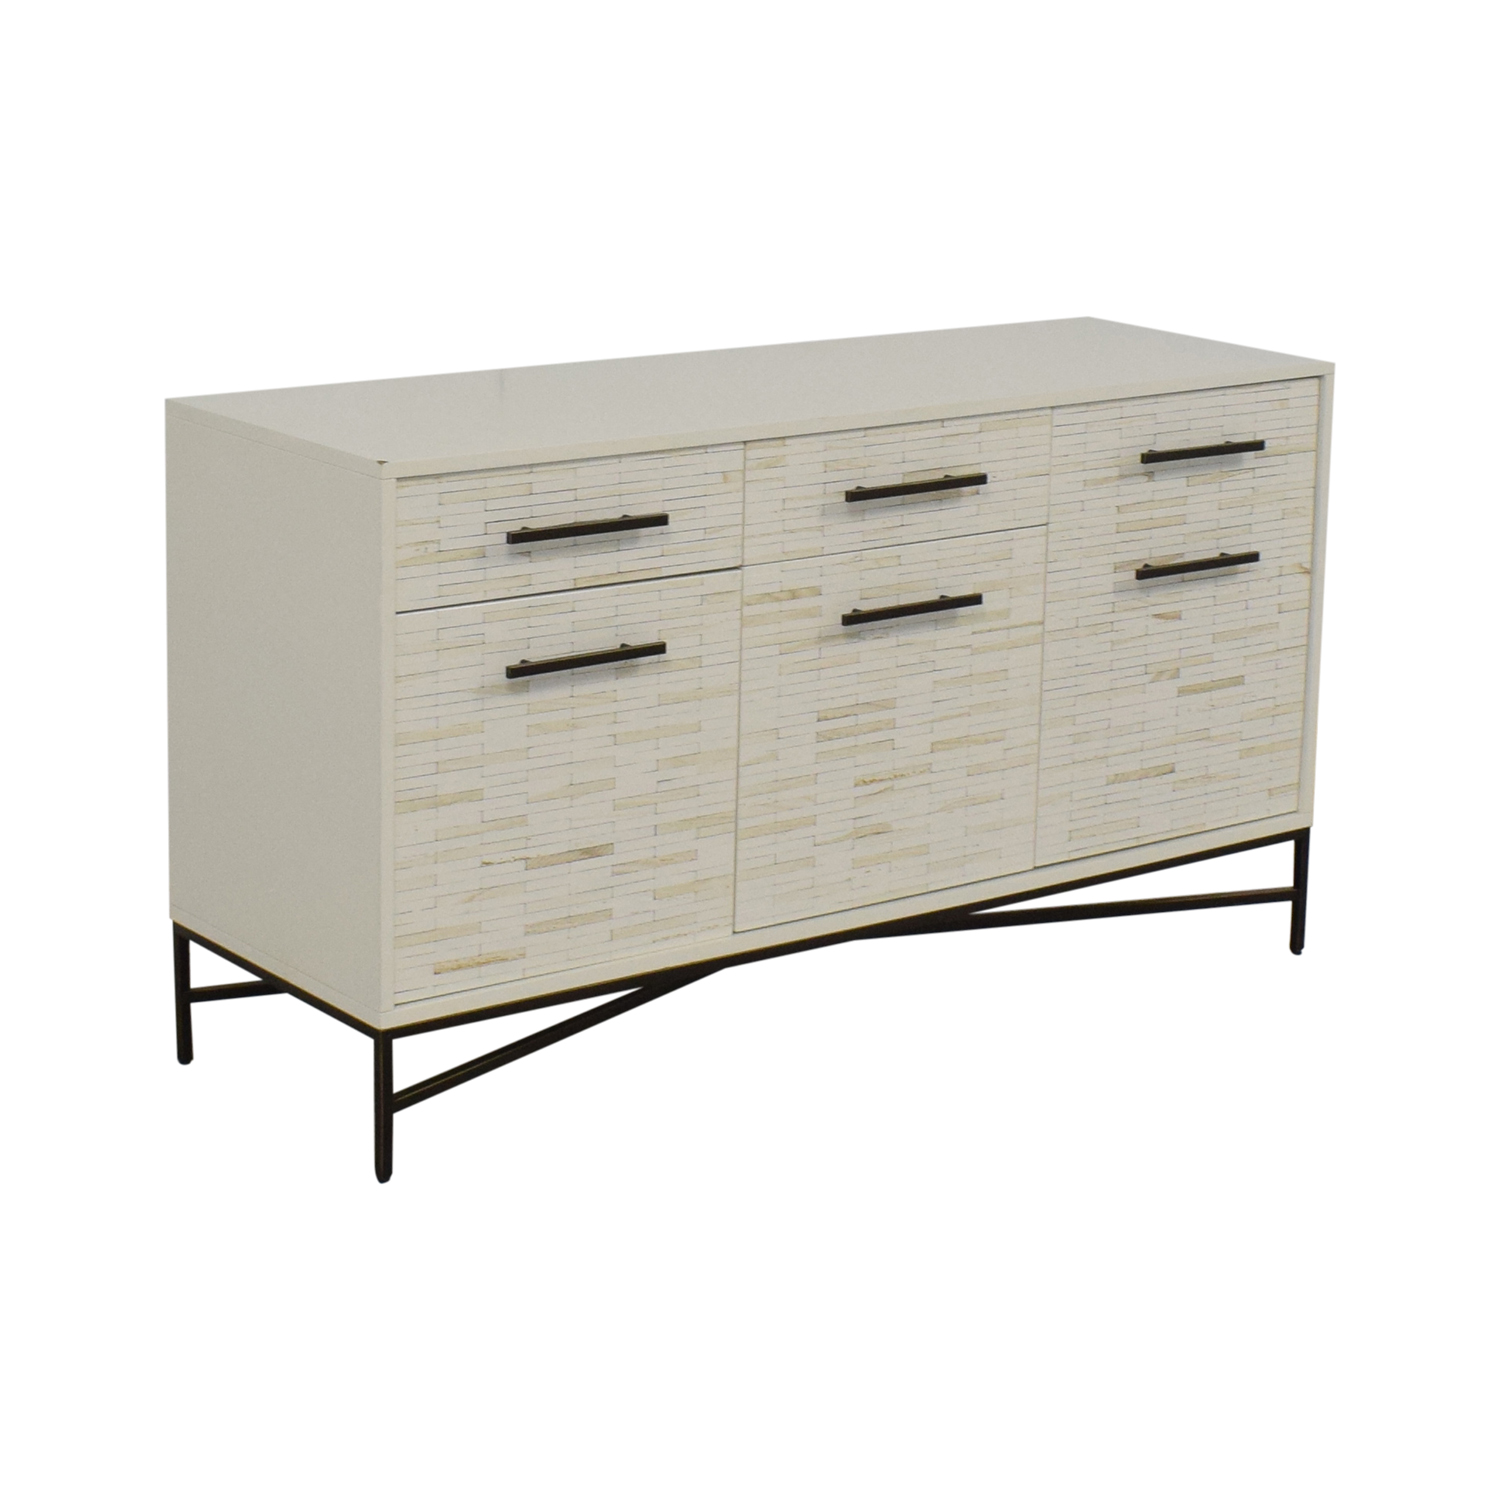 West Elm Tiled Media Console / Media Units